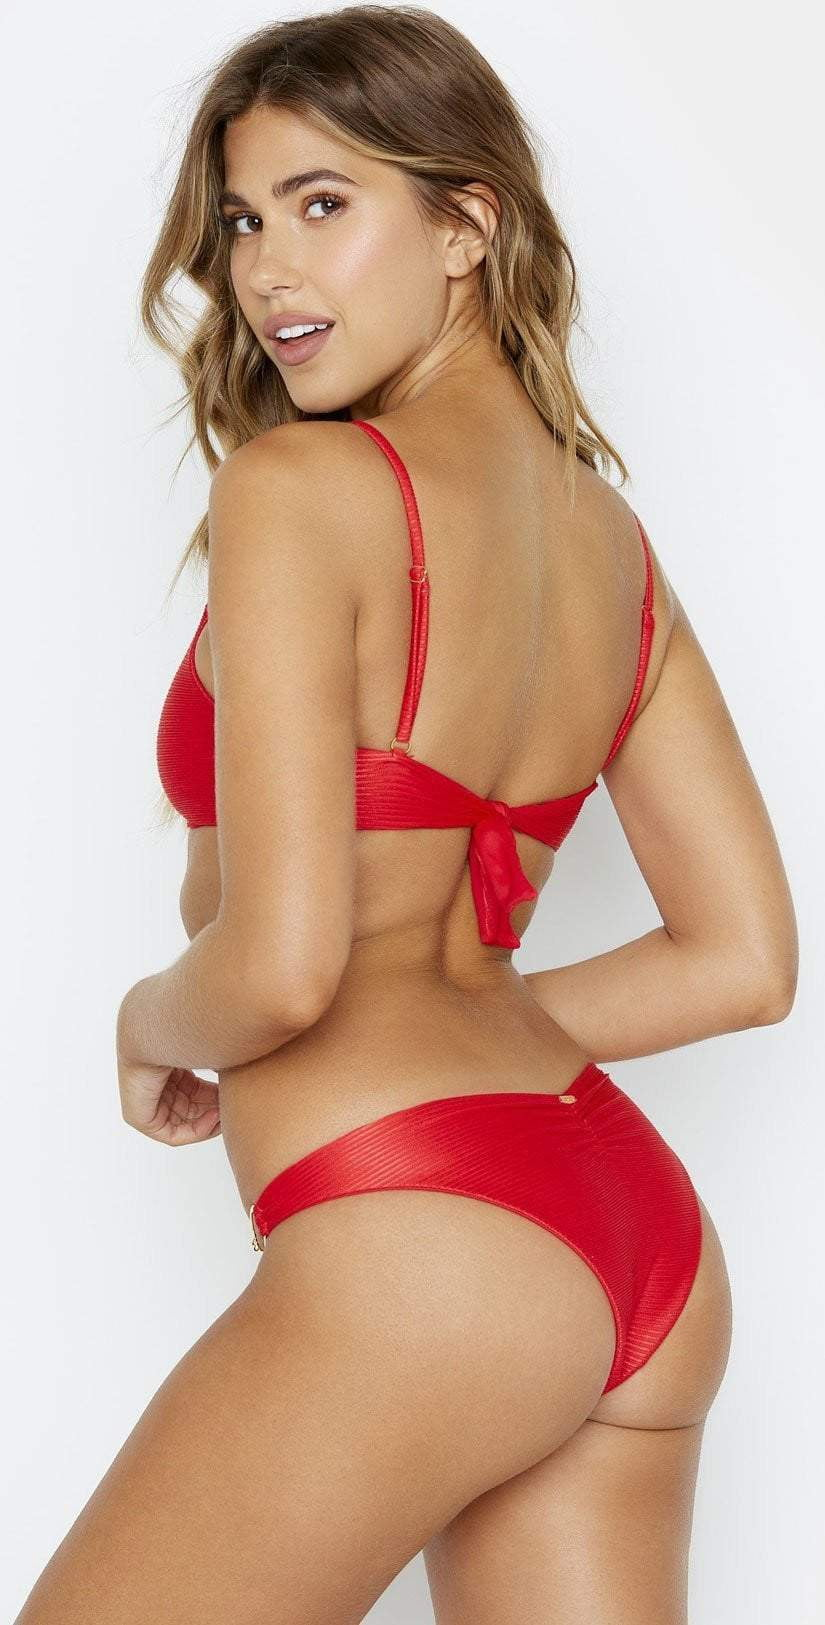 Beach Bunny Nadia Skimpy Bikini Bottom in Red B19147B1 REDD: